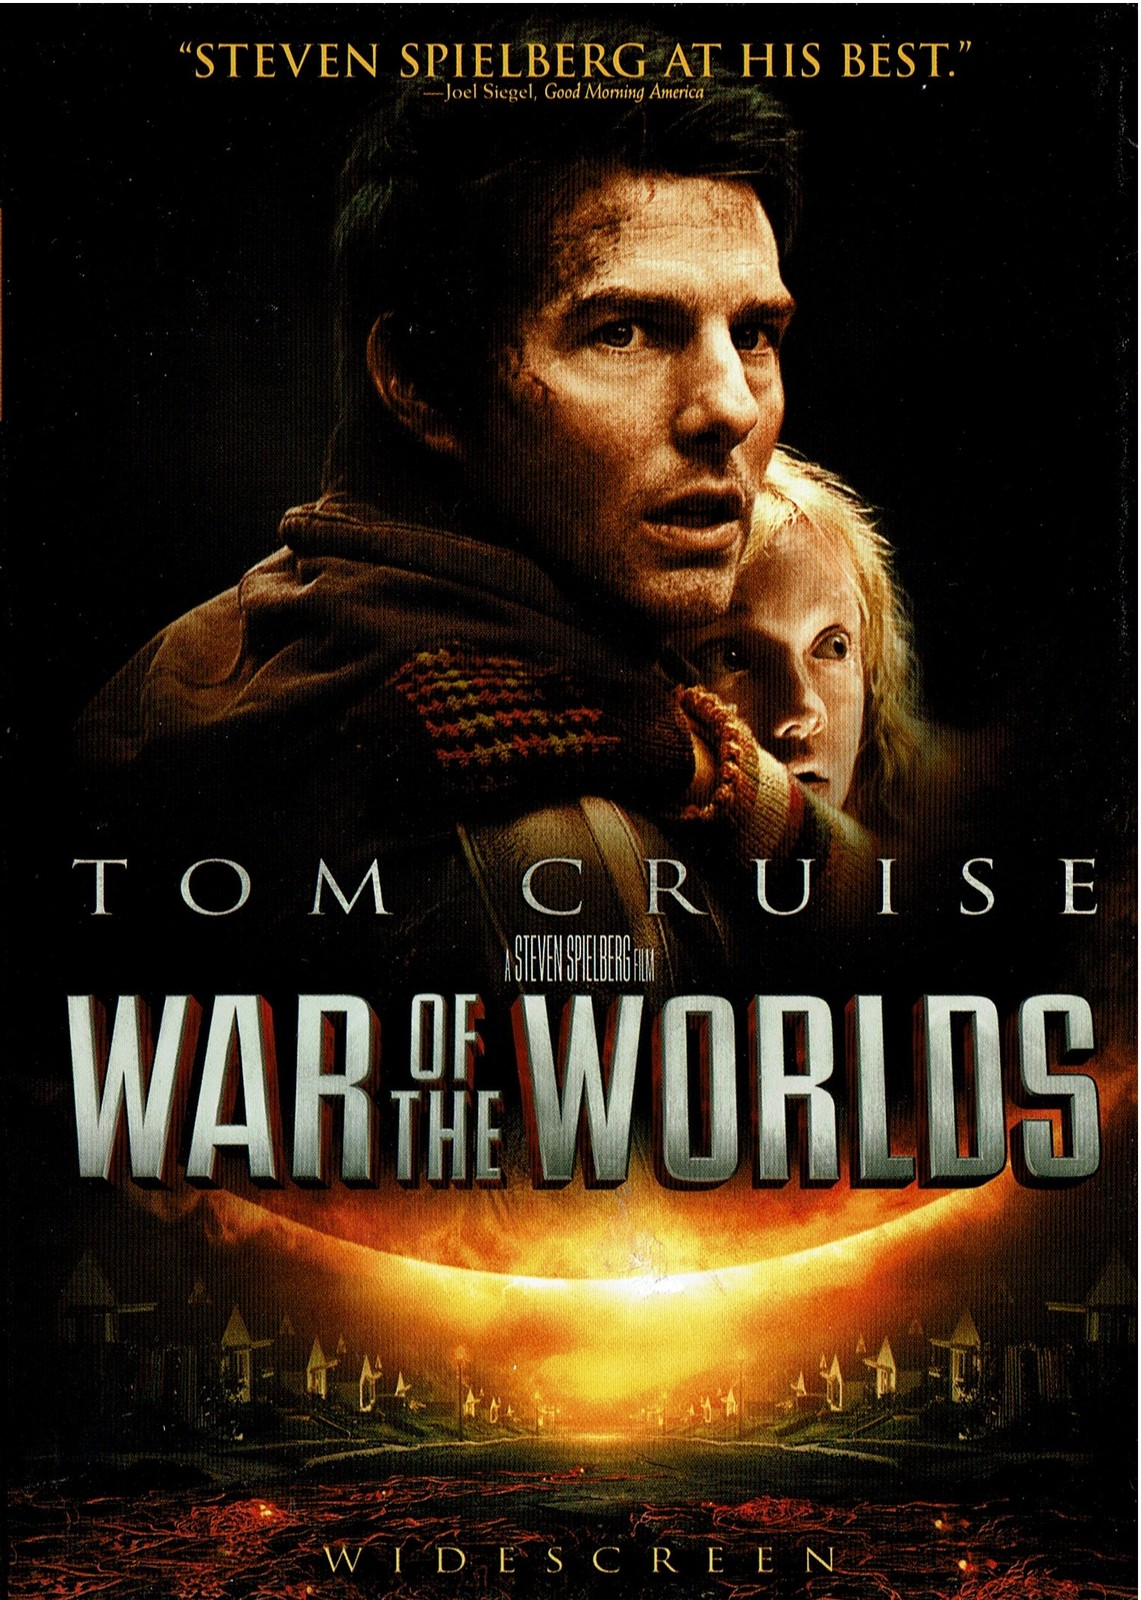 War of the Worlds, DVD, 2005, Tom Cruise, Widescreen